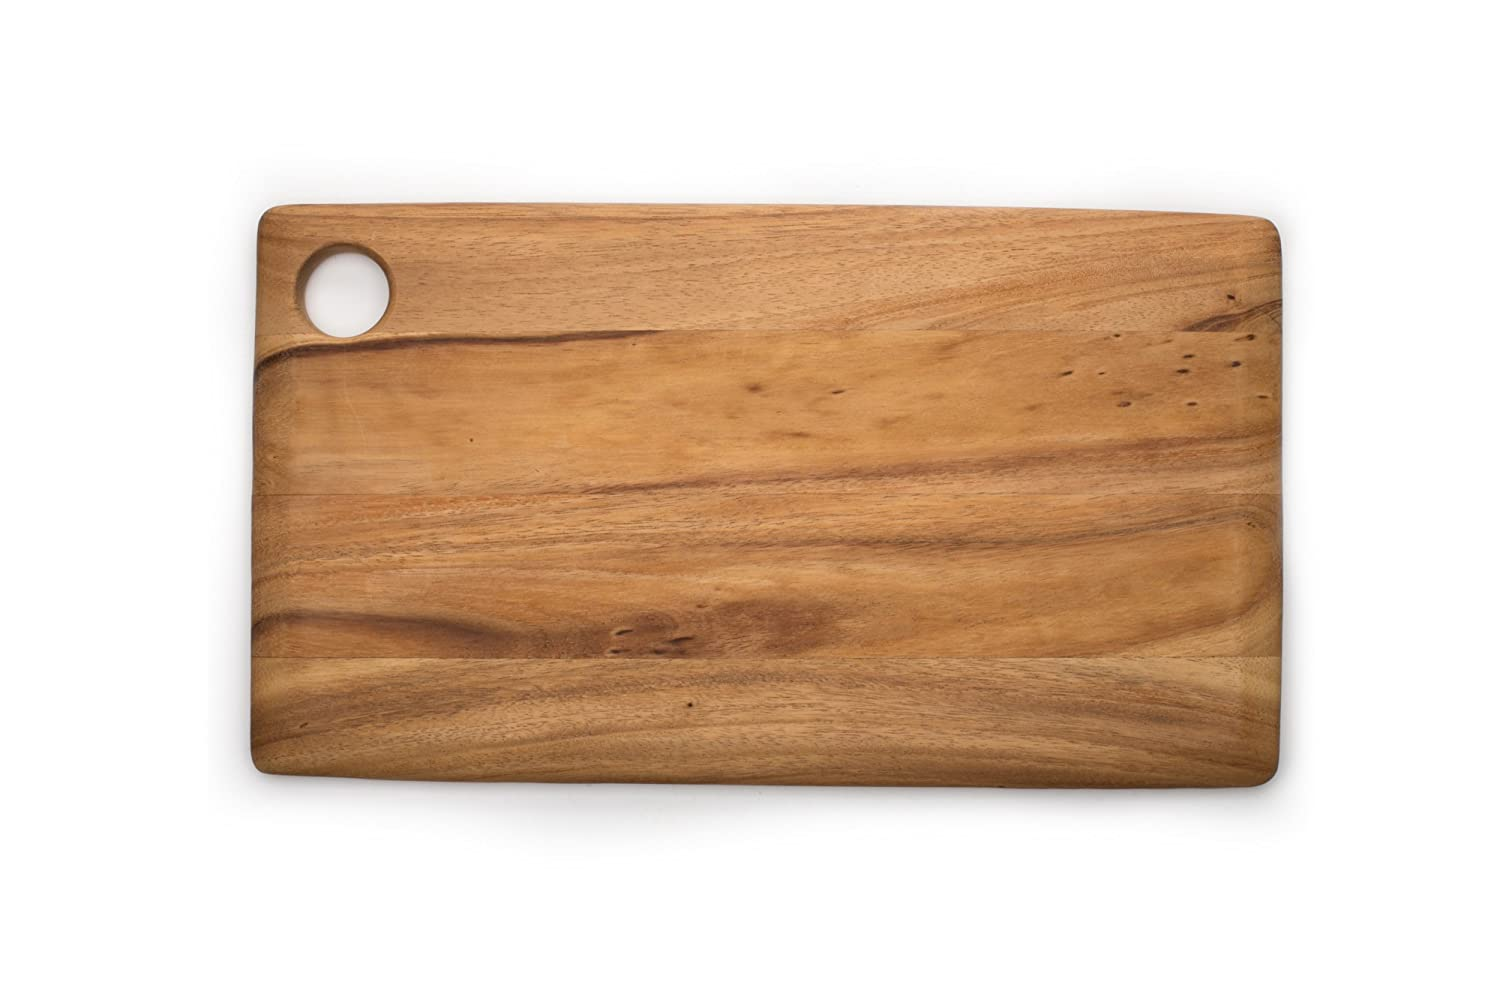 Ironwood Gourmet 28215 Rectangular Everyday Cutting Board, Acacia Wood